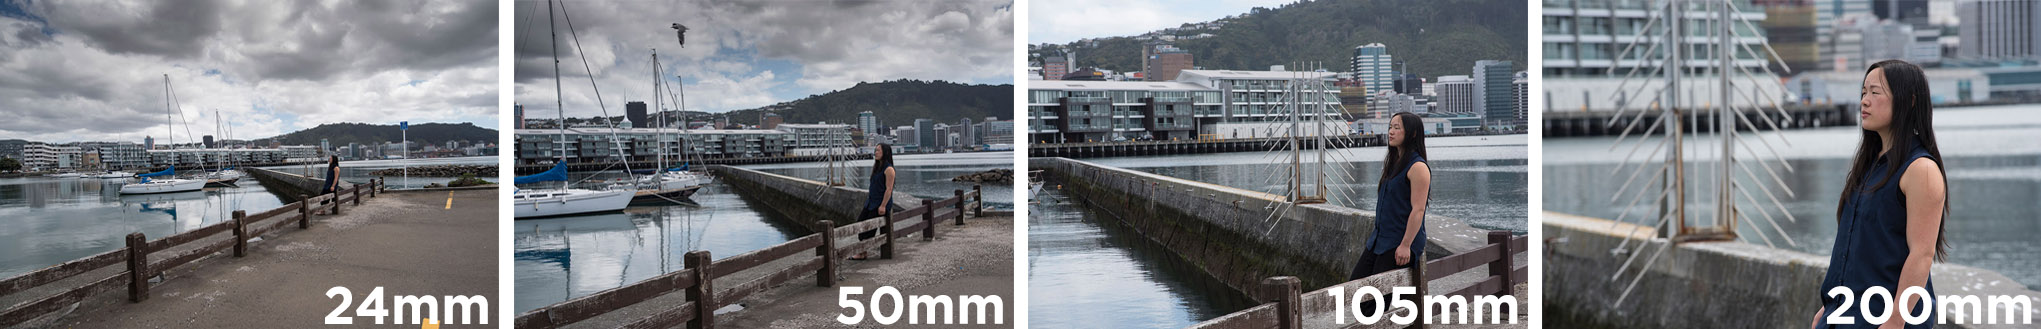 Four photographs taken with focal lengths from 24mm to 200mm.